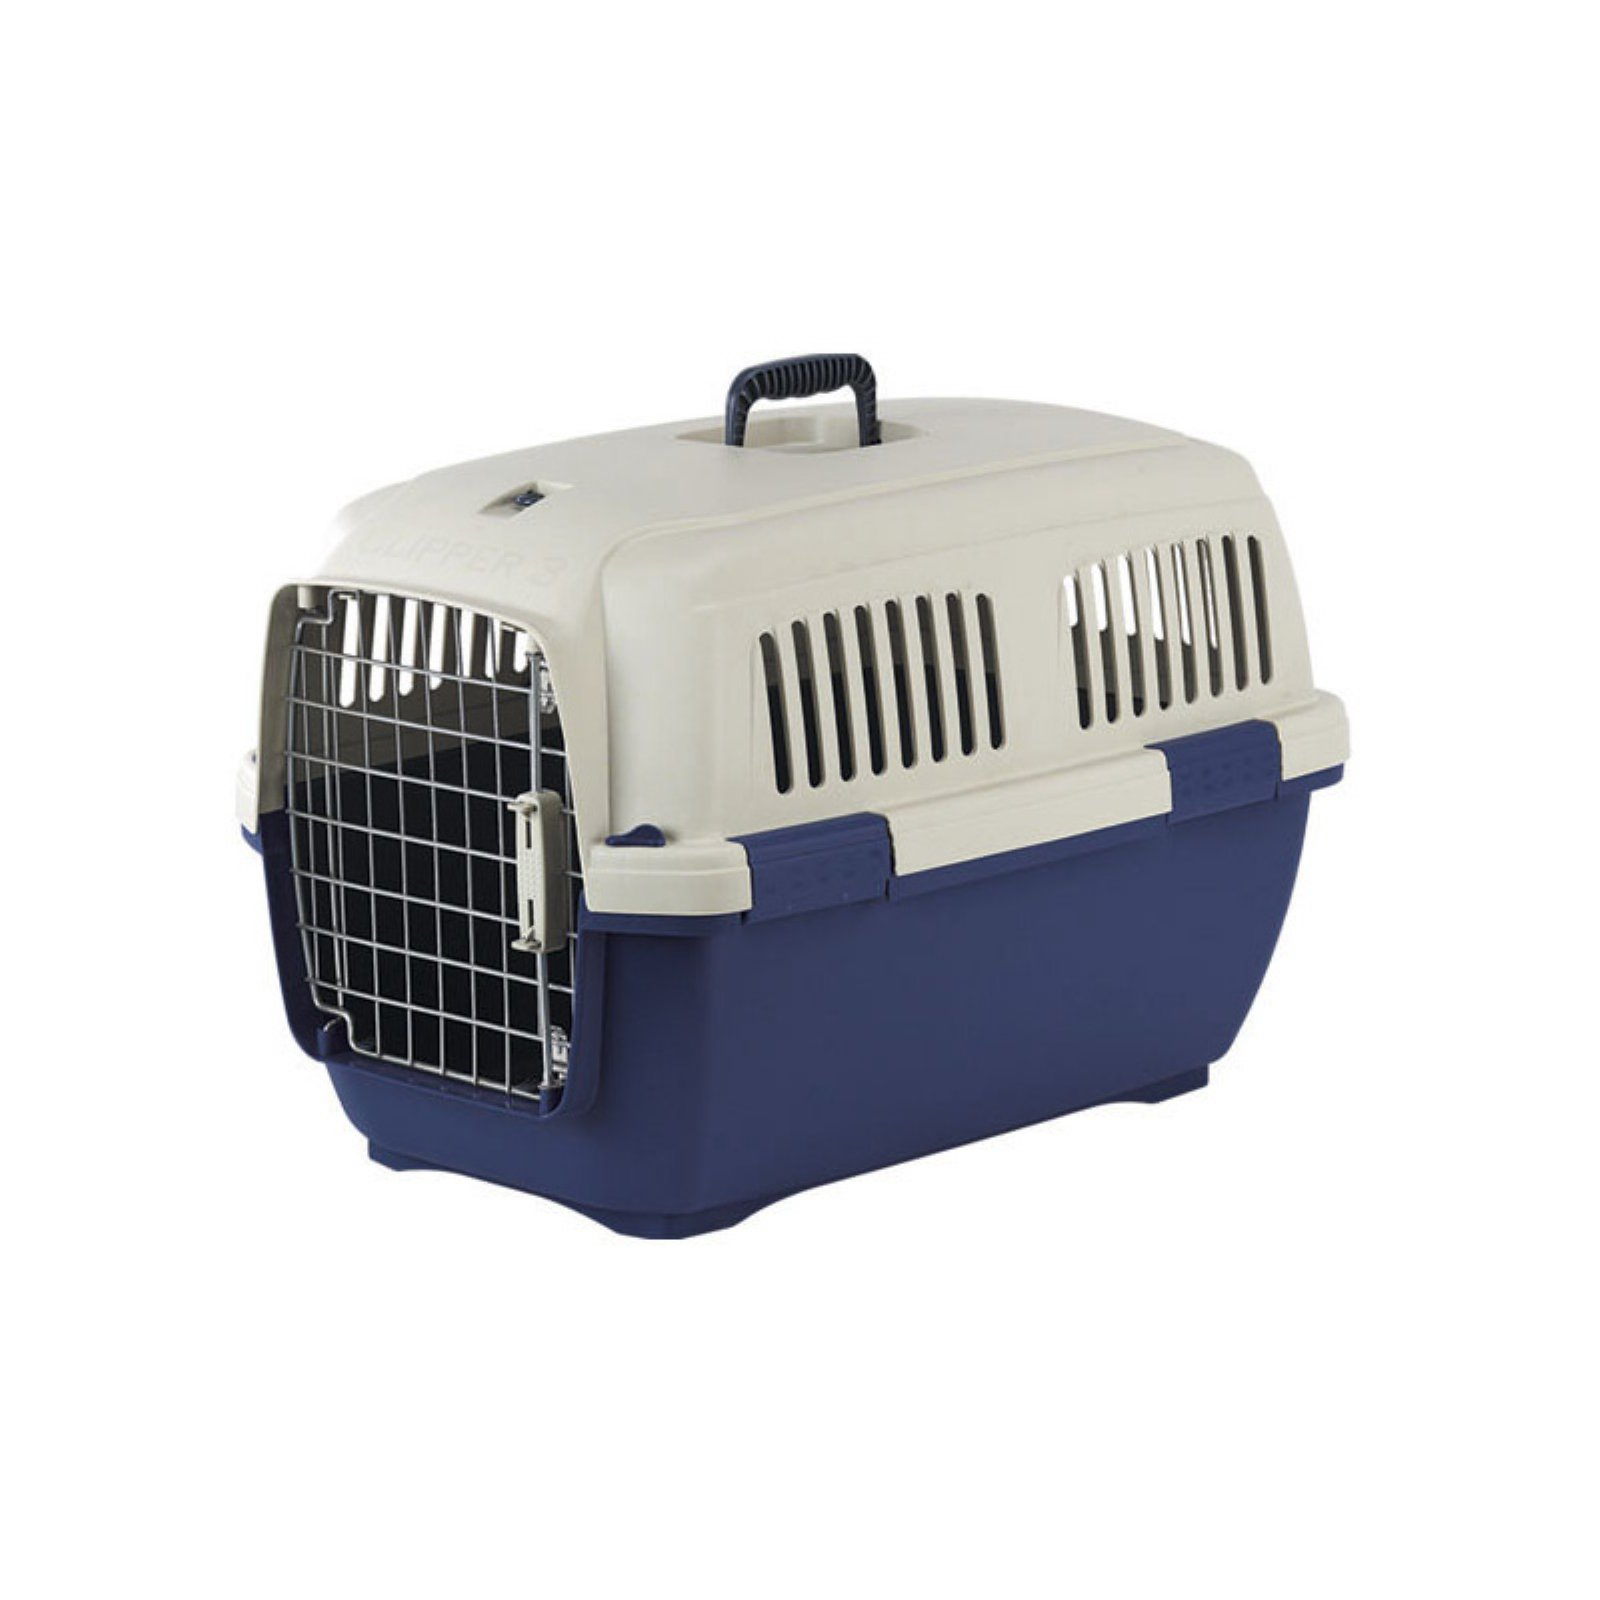 Clipper Cayman Plastic Pet Carrier by Marchioro USA Inc